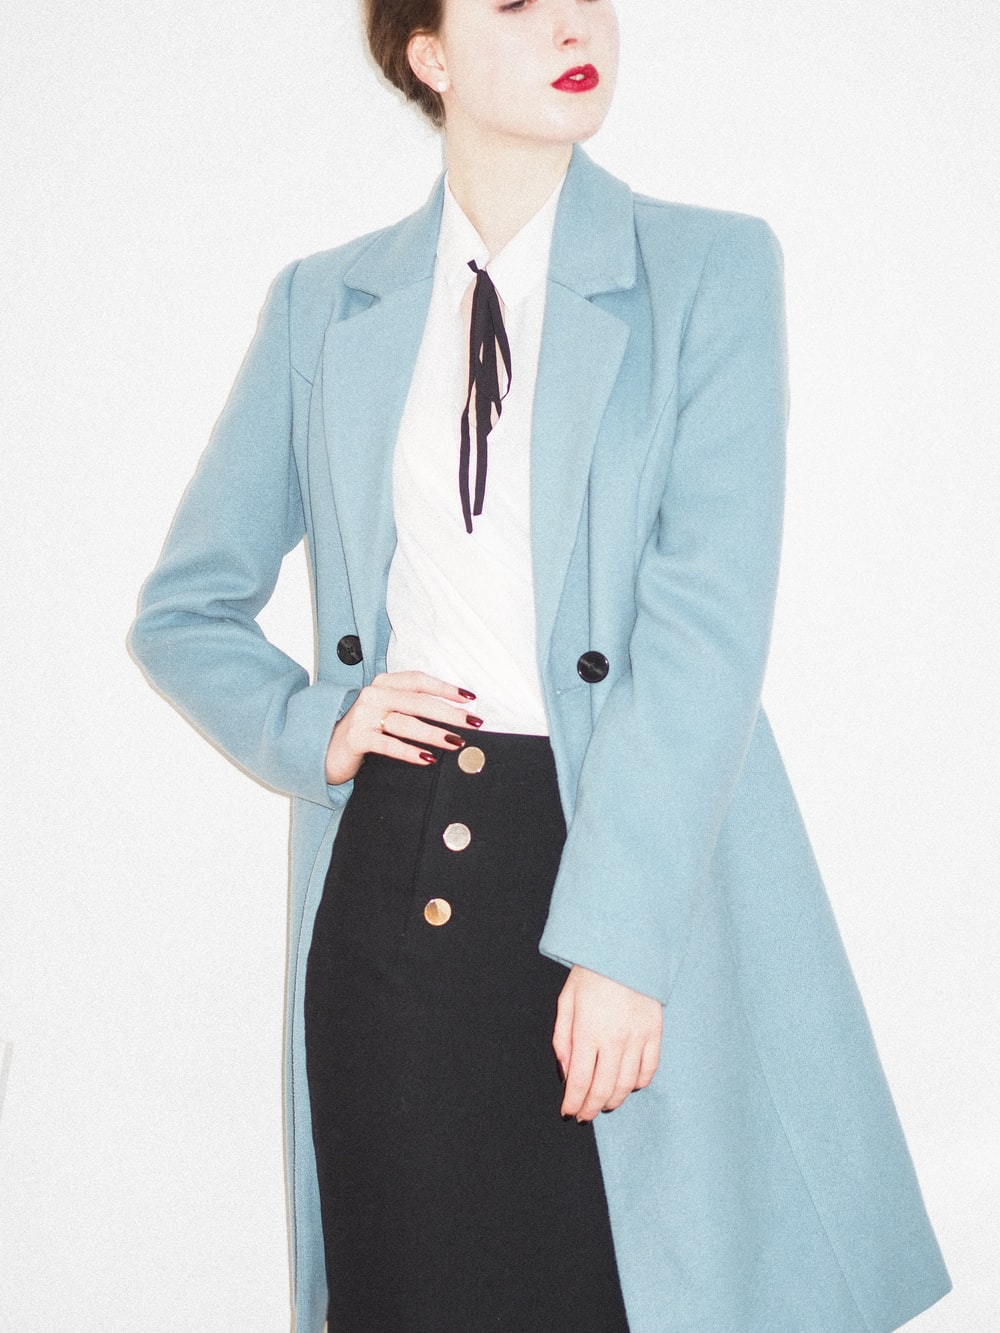 woman in teal blazer and black dress